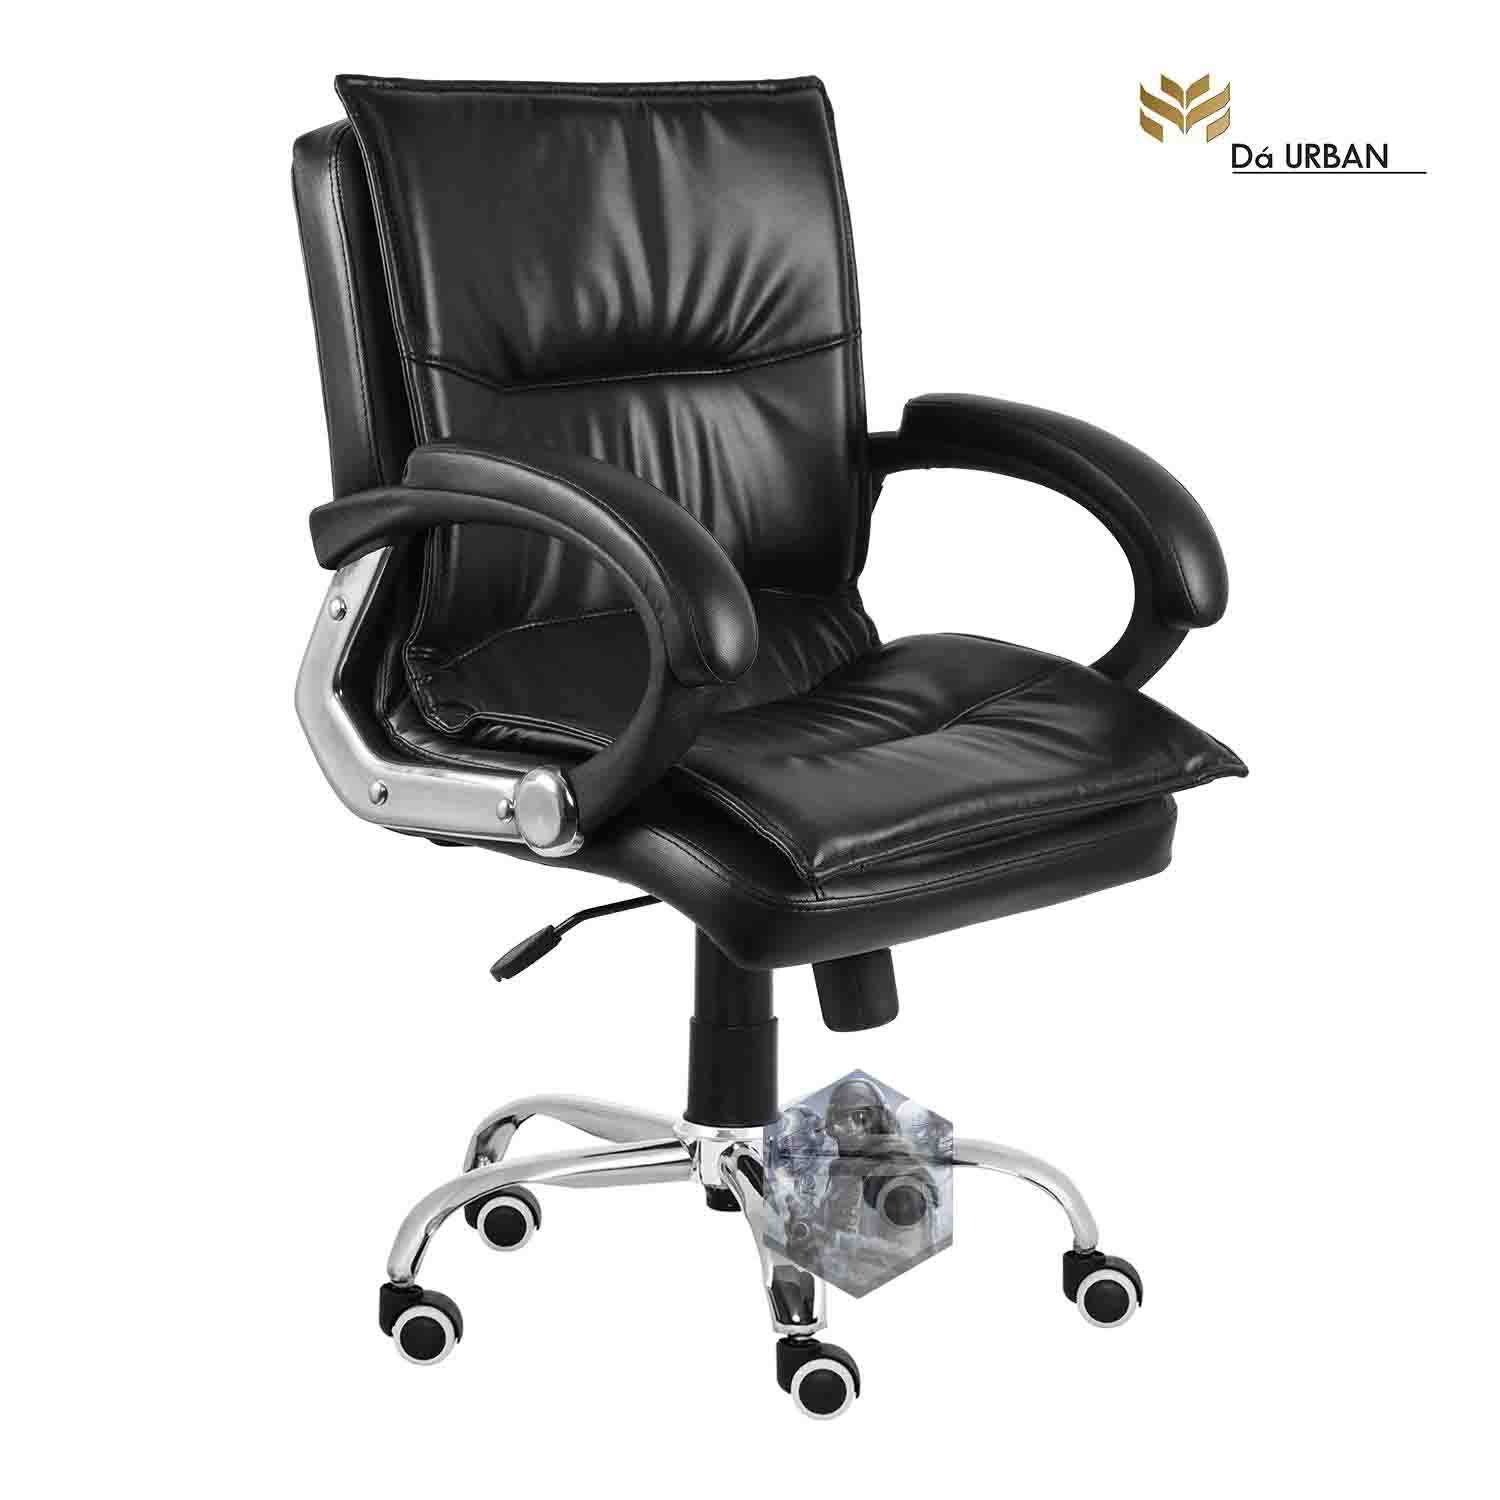 Top 5 Affordable Gaming Chair India (Apr 2020)